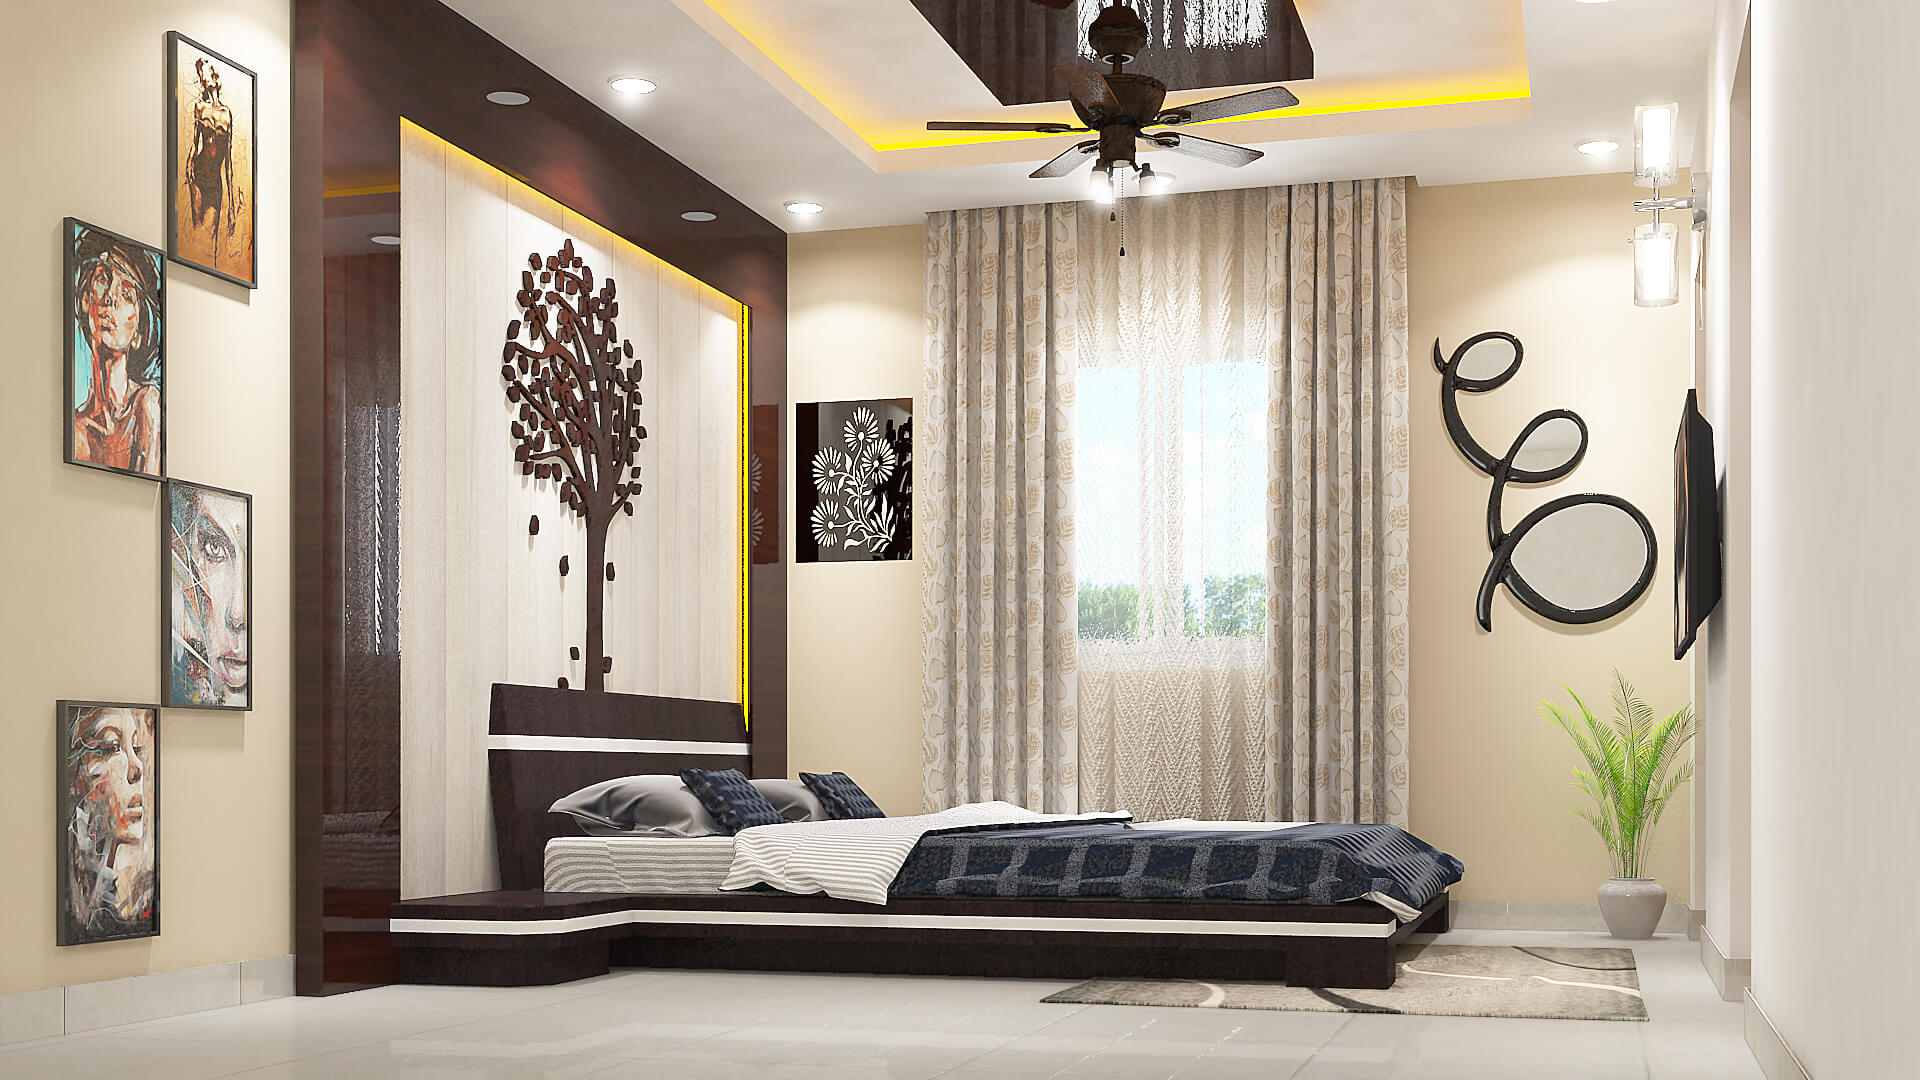 Luxury 3 BHK Flats in Sholinagnallur